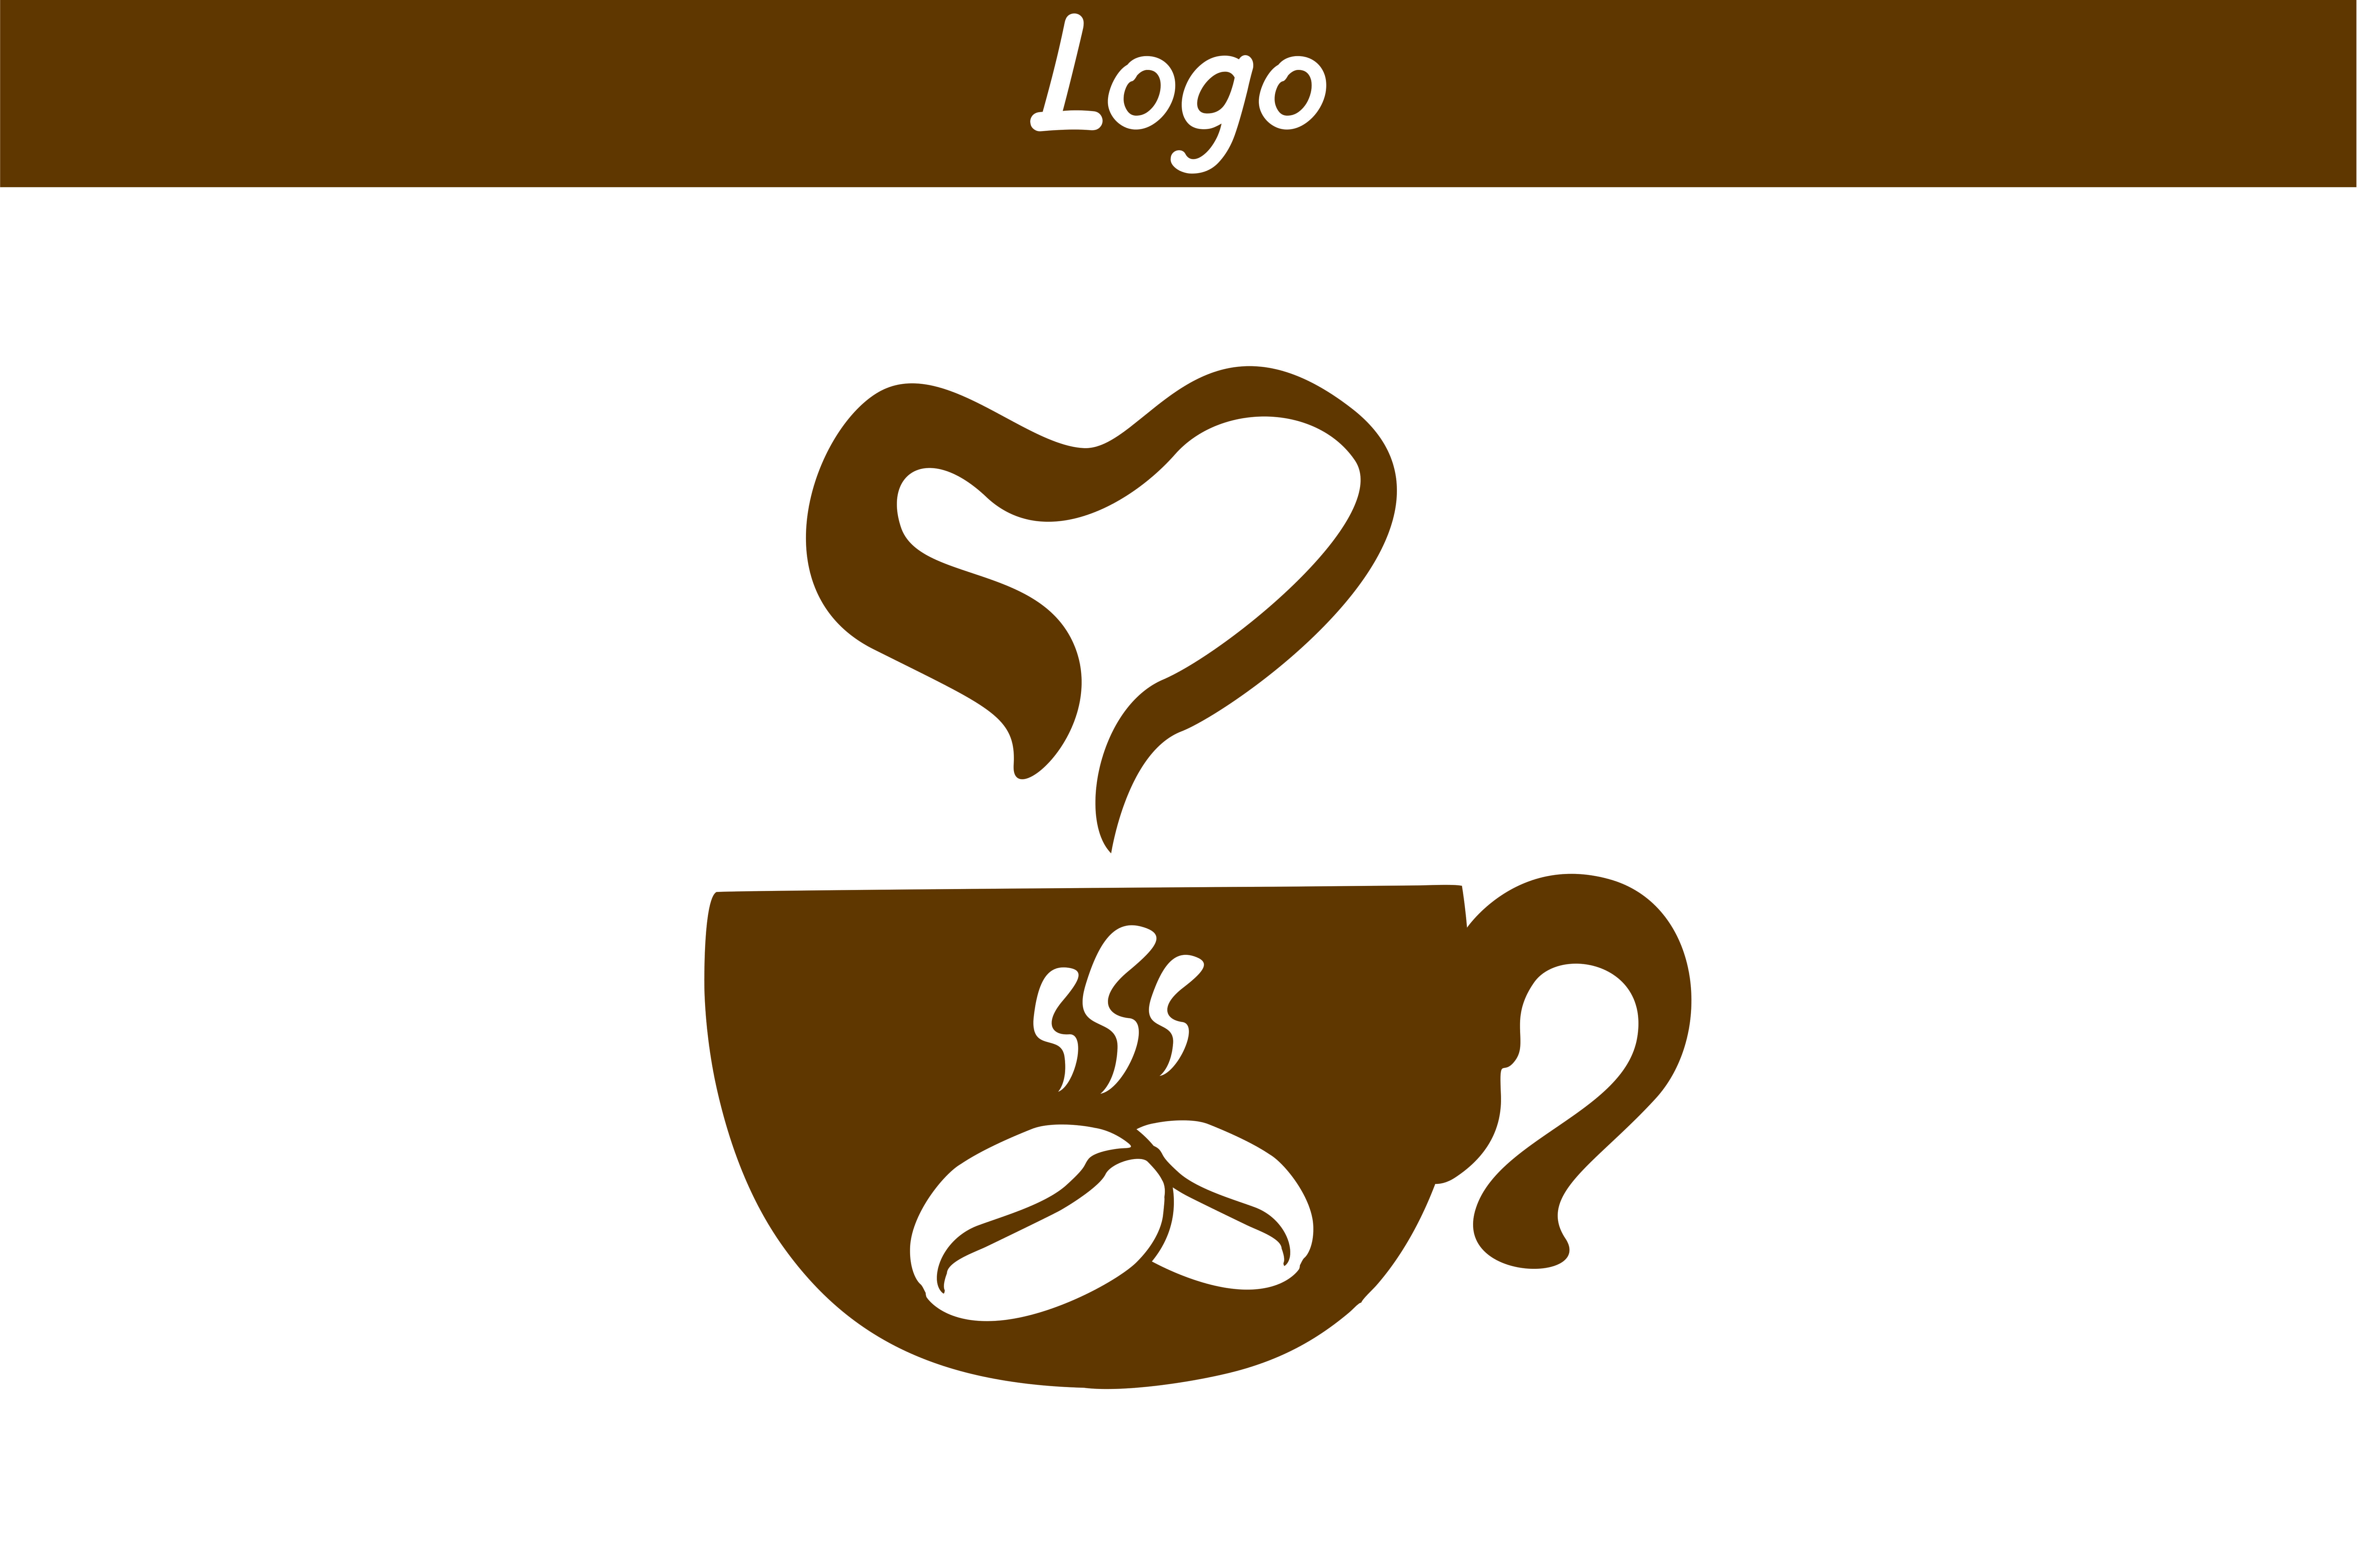 Download Free Coffee Logo Graphic By Arief Sapta Adjie Creative Fabrica for Cricut Explore, Silhouette and other cutting machines.